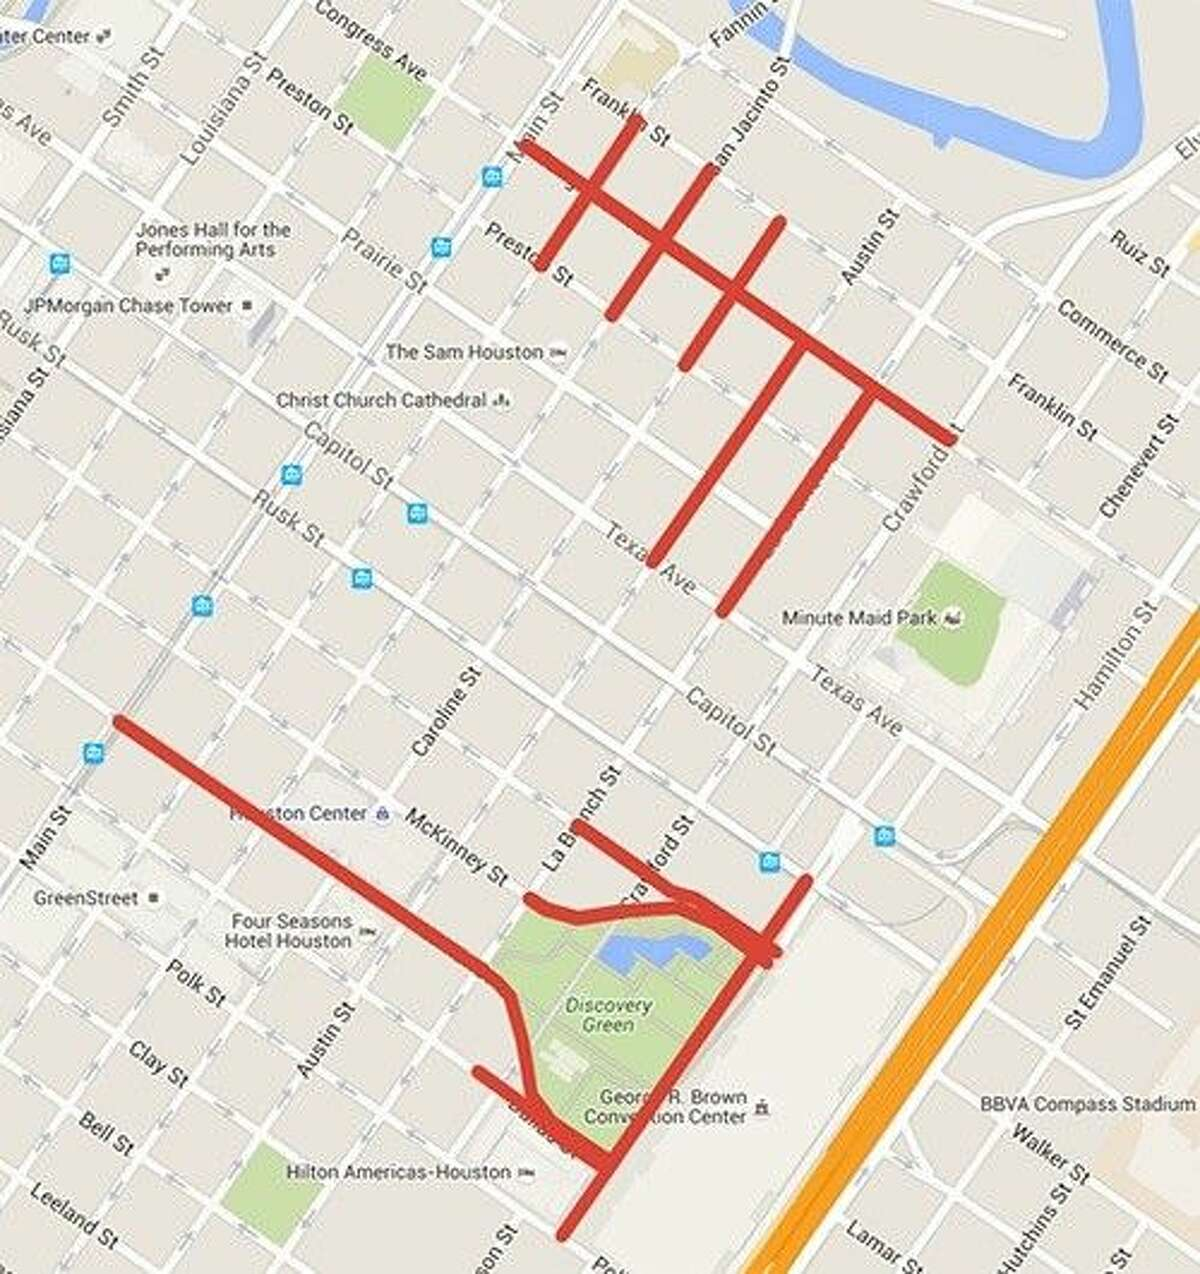 For those residents going into the city this weekend, be aware of possible road closures due to the 2016 Chevron Houston Marathon/Aramco Houston Half-Marathon.